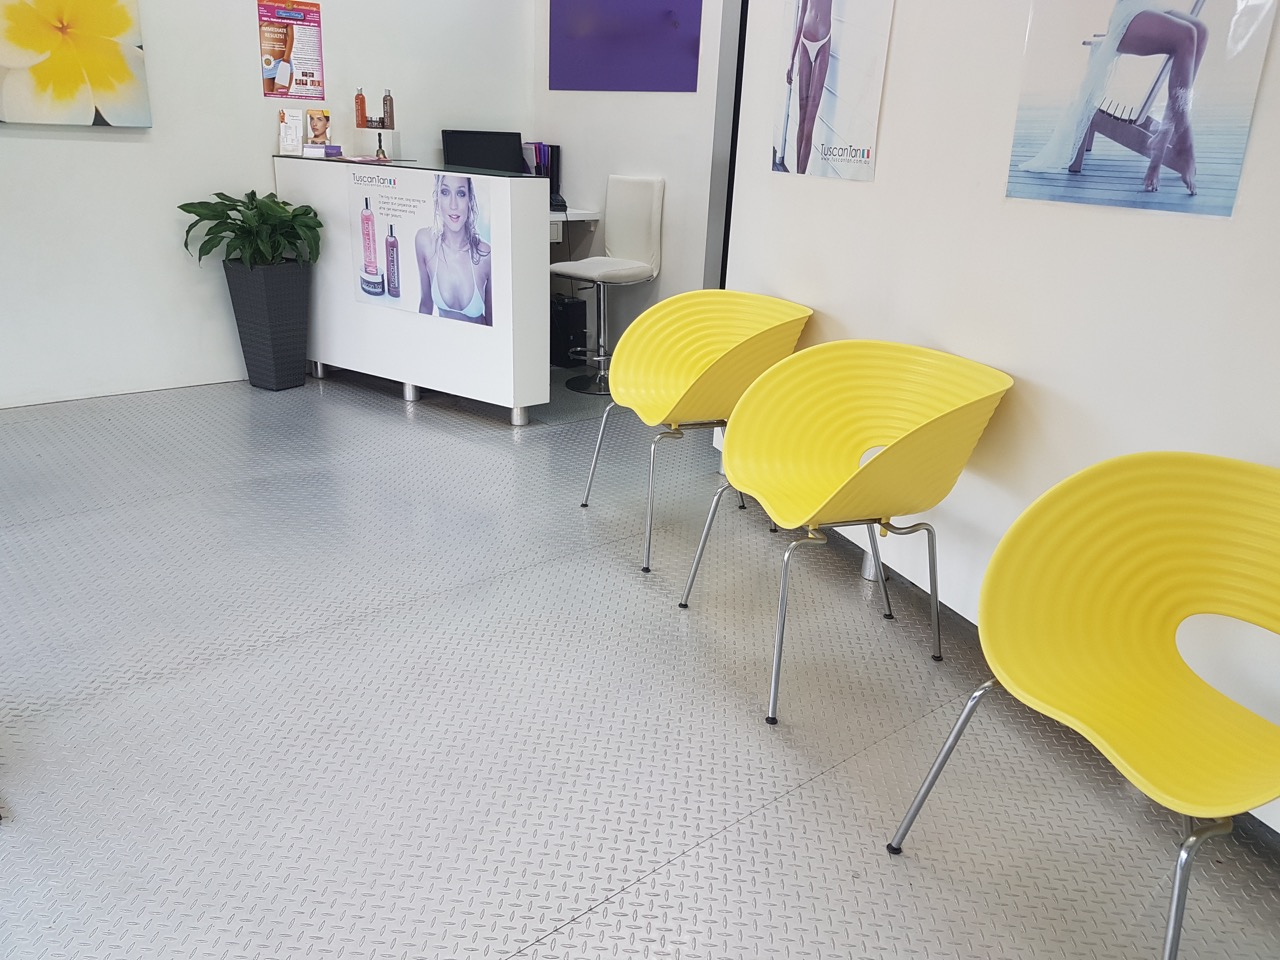 Waxing and Tanning Beauty Salon Business For Sale Bayside